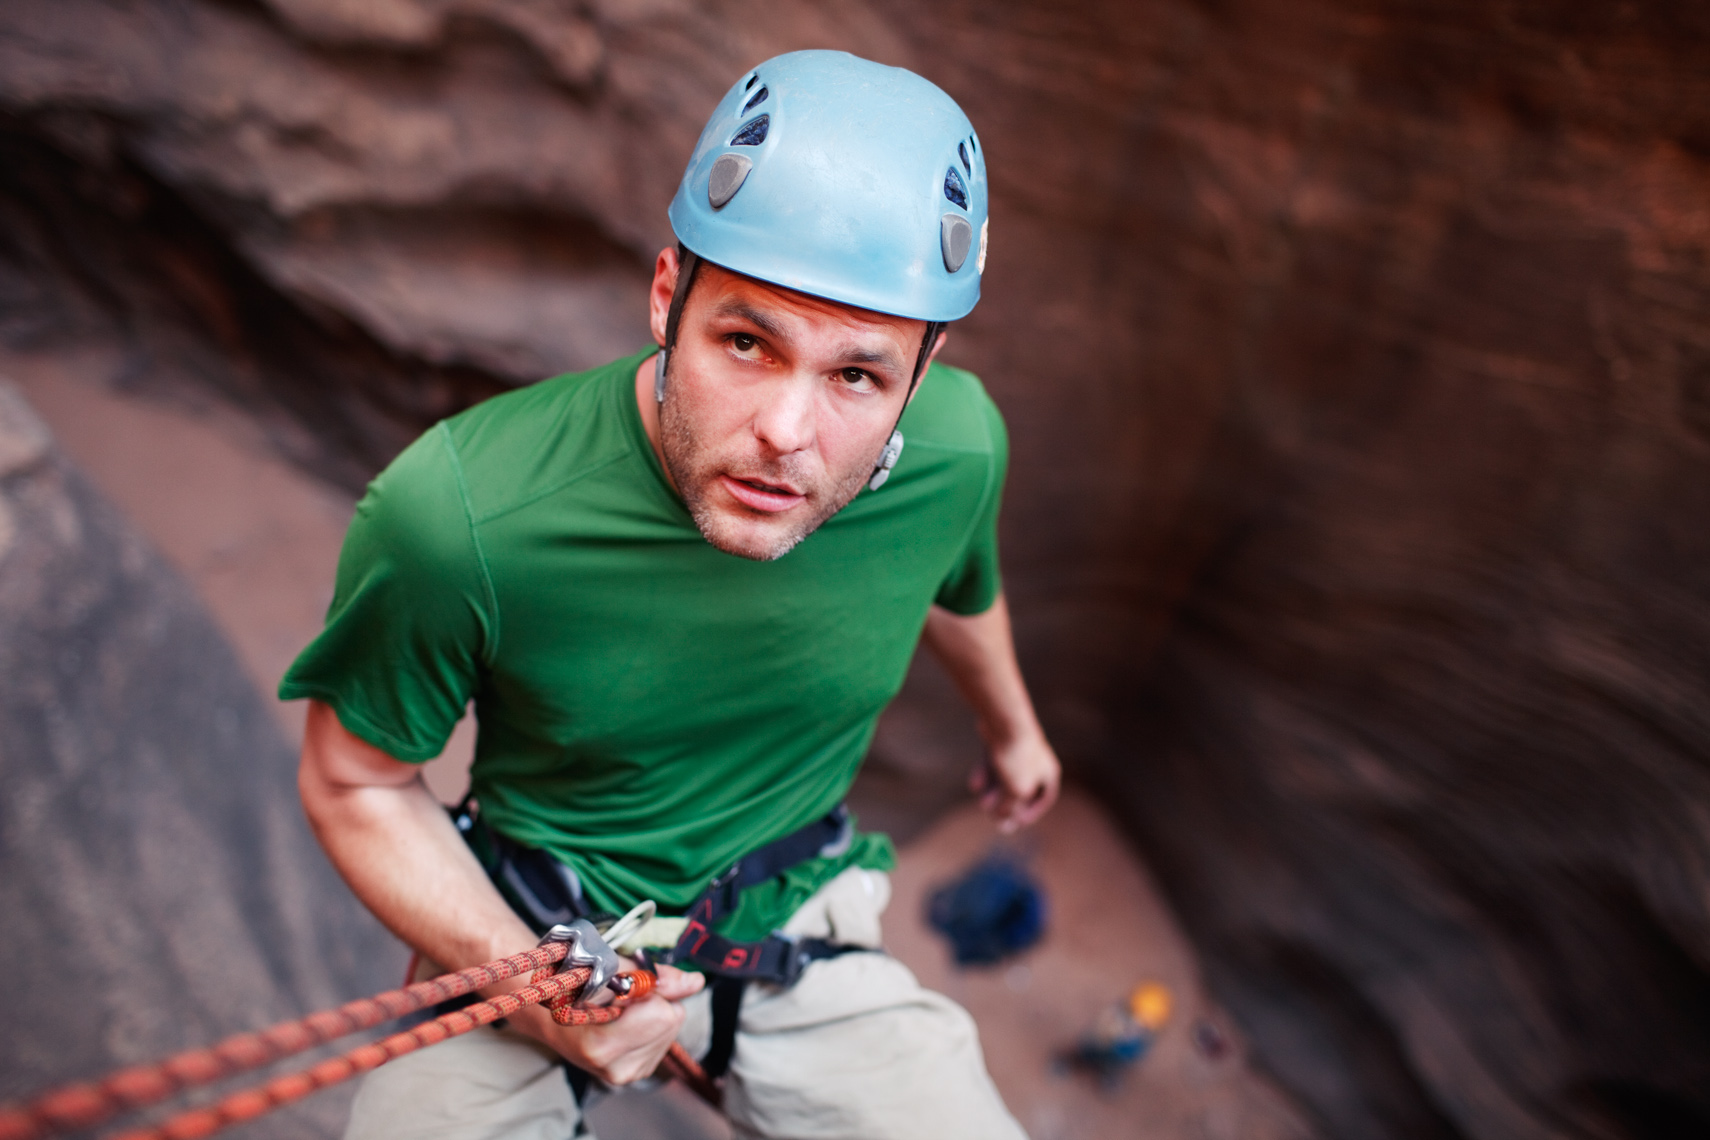 Repelling in Zion National Park